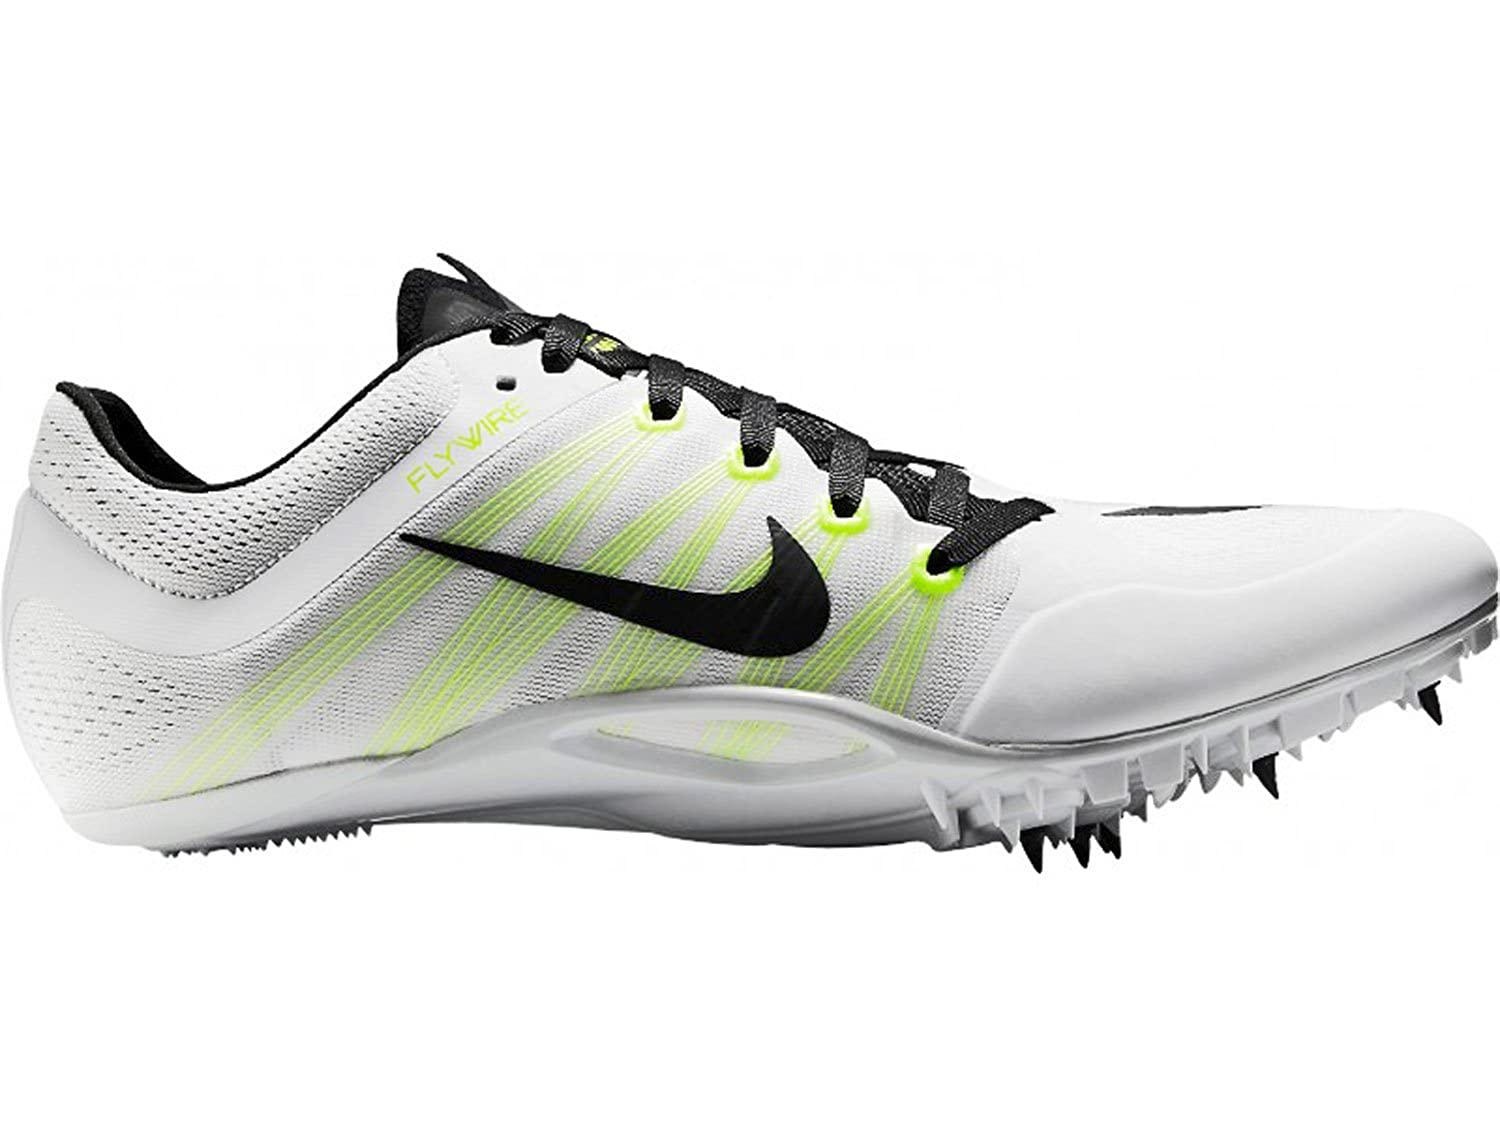 save off 68bc5 3842f Amazon.com  Nike Zoom JA Fly 2 Running Spikes  Track  Field  Cross  Country